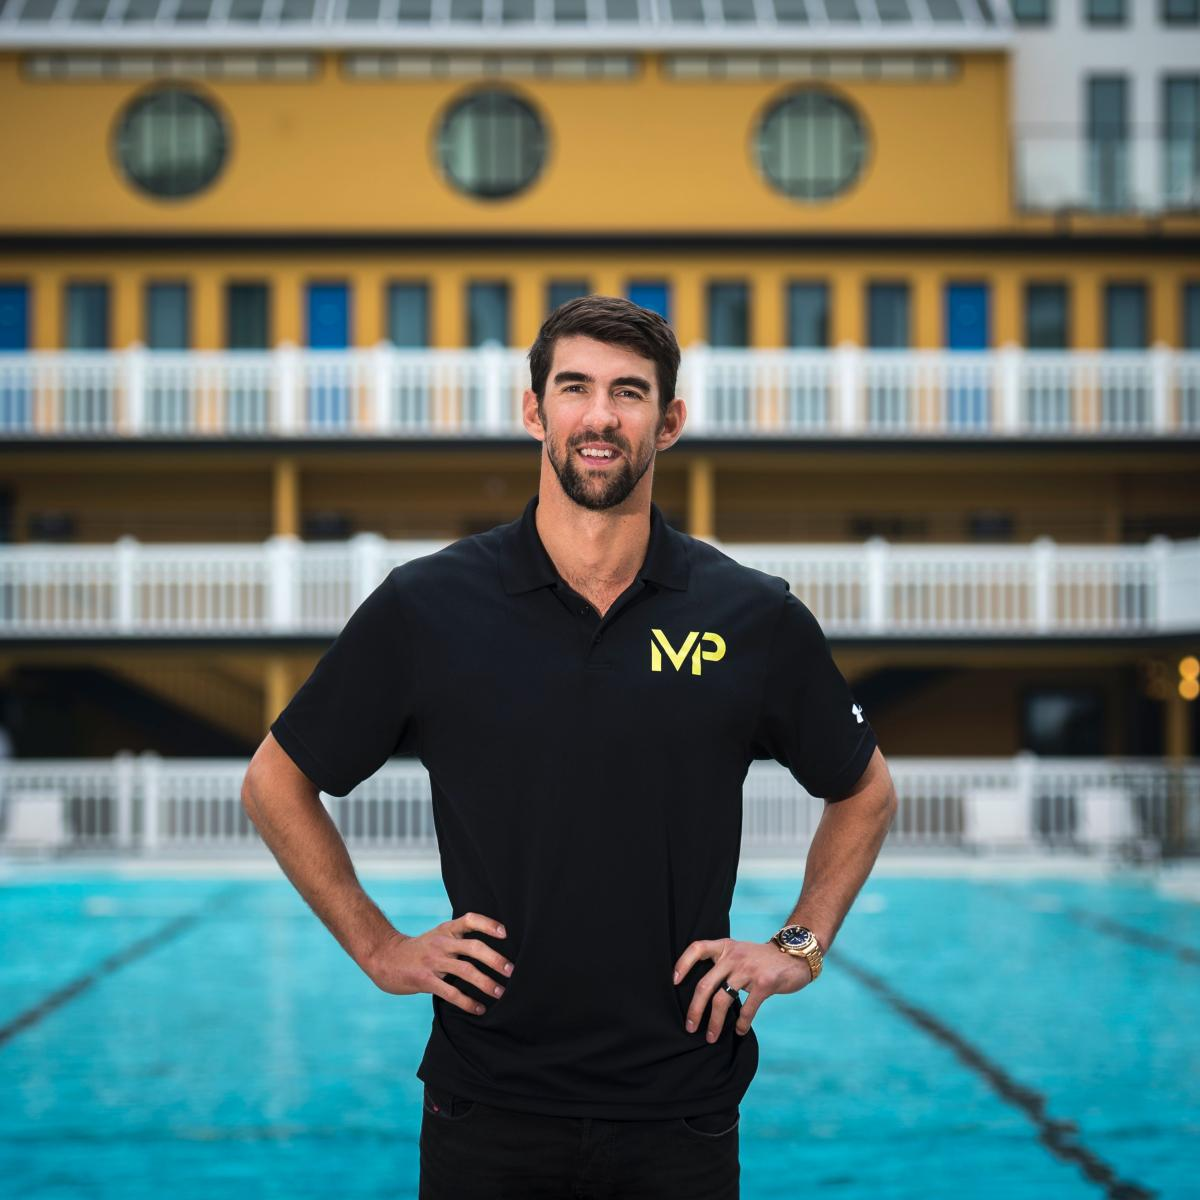 Michael Phelps Latest News | Breaking News on Michael ...